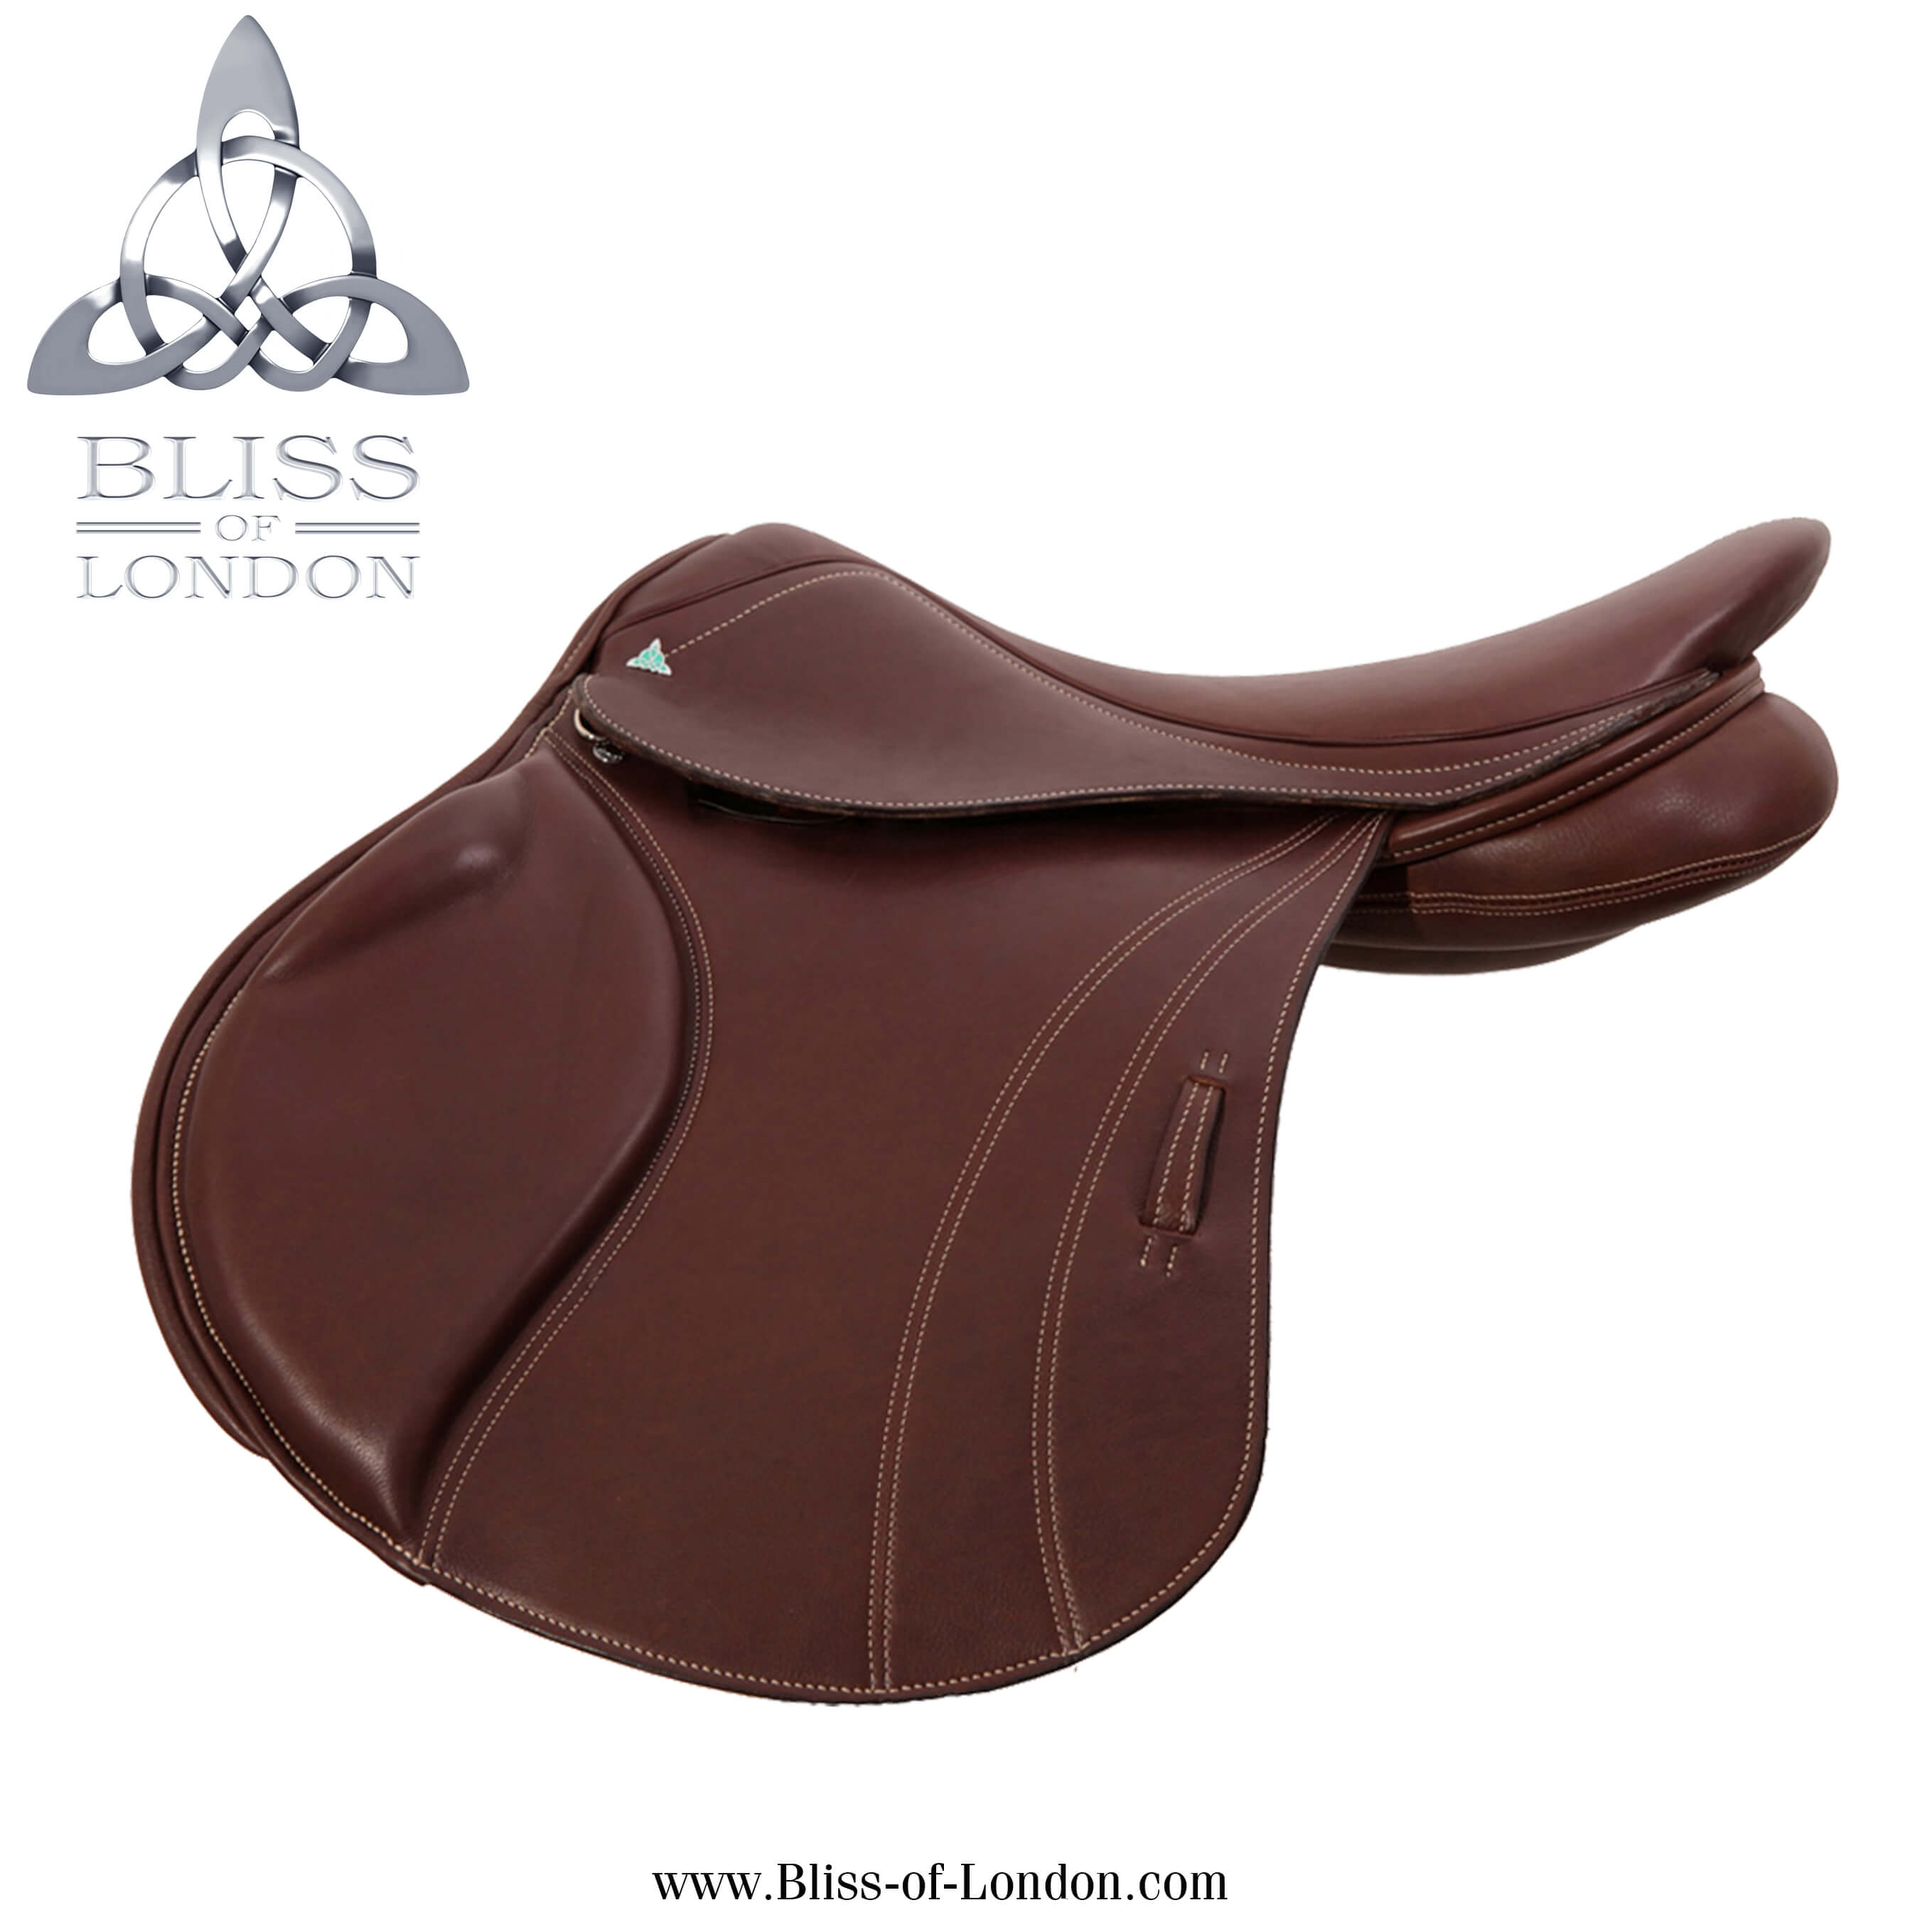 1 A Product page 1 - Liberty Eventer side shot